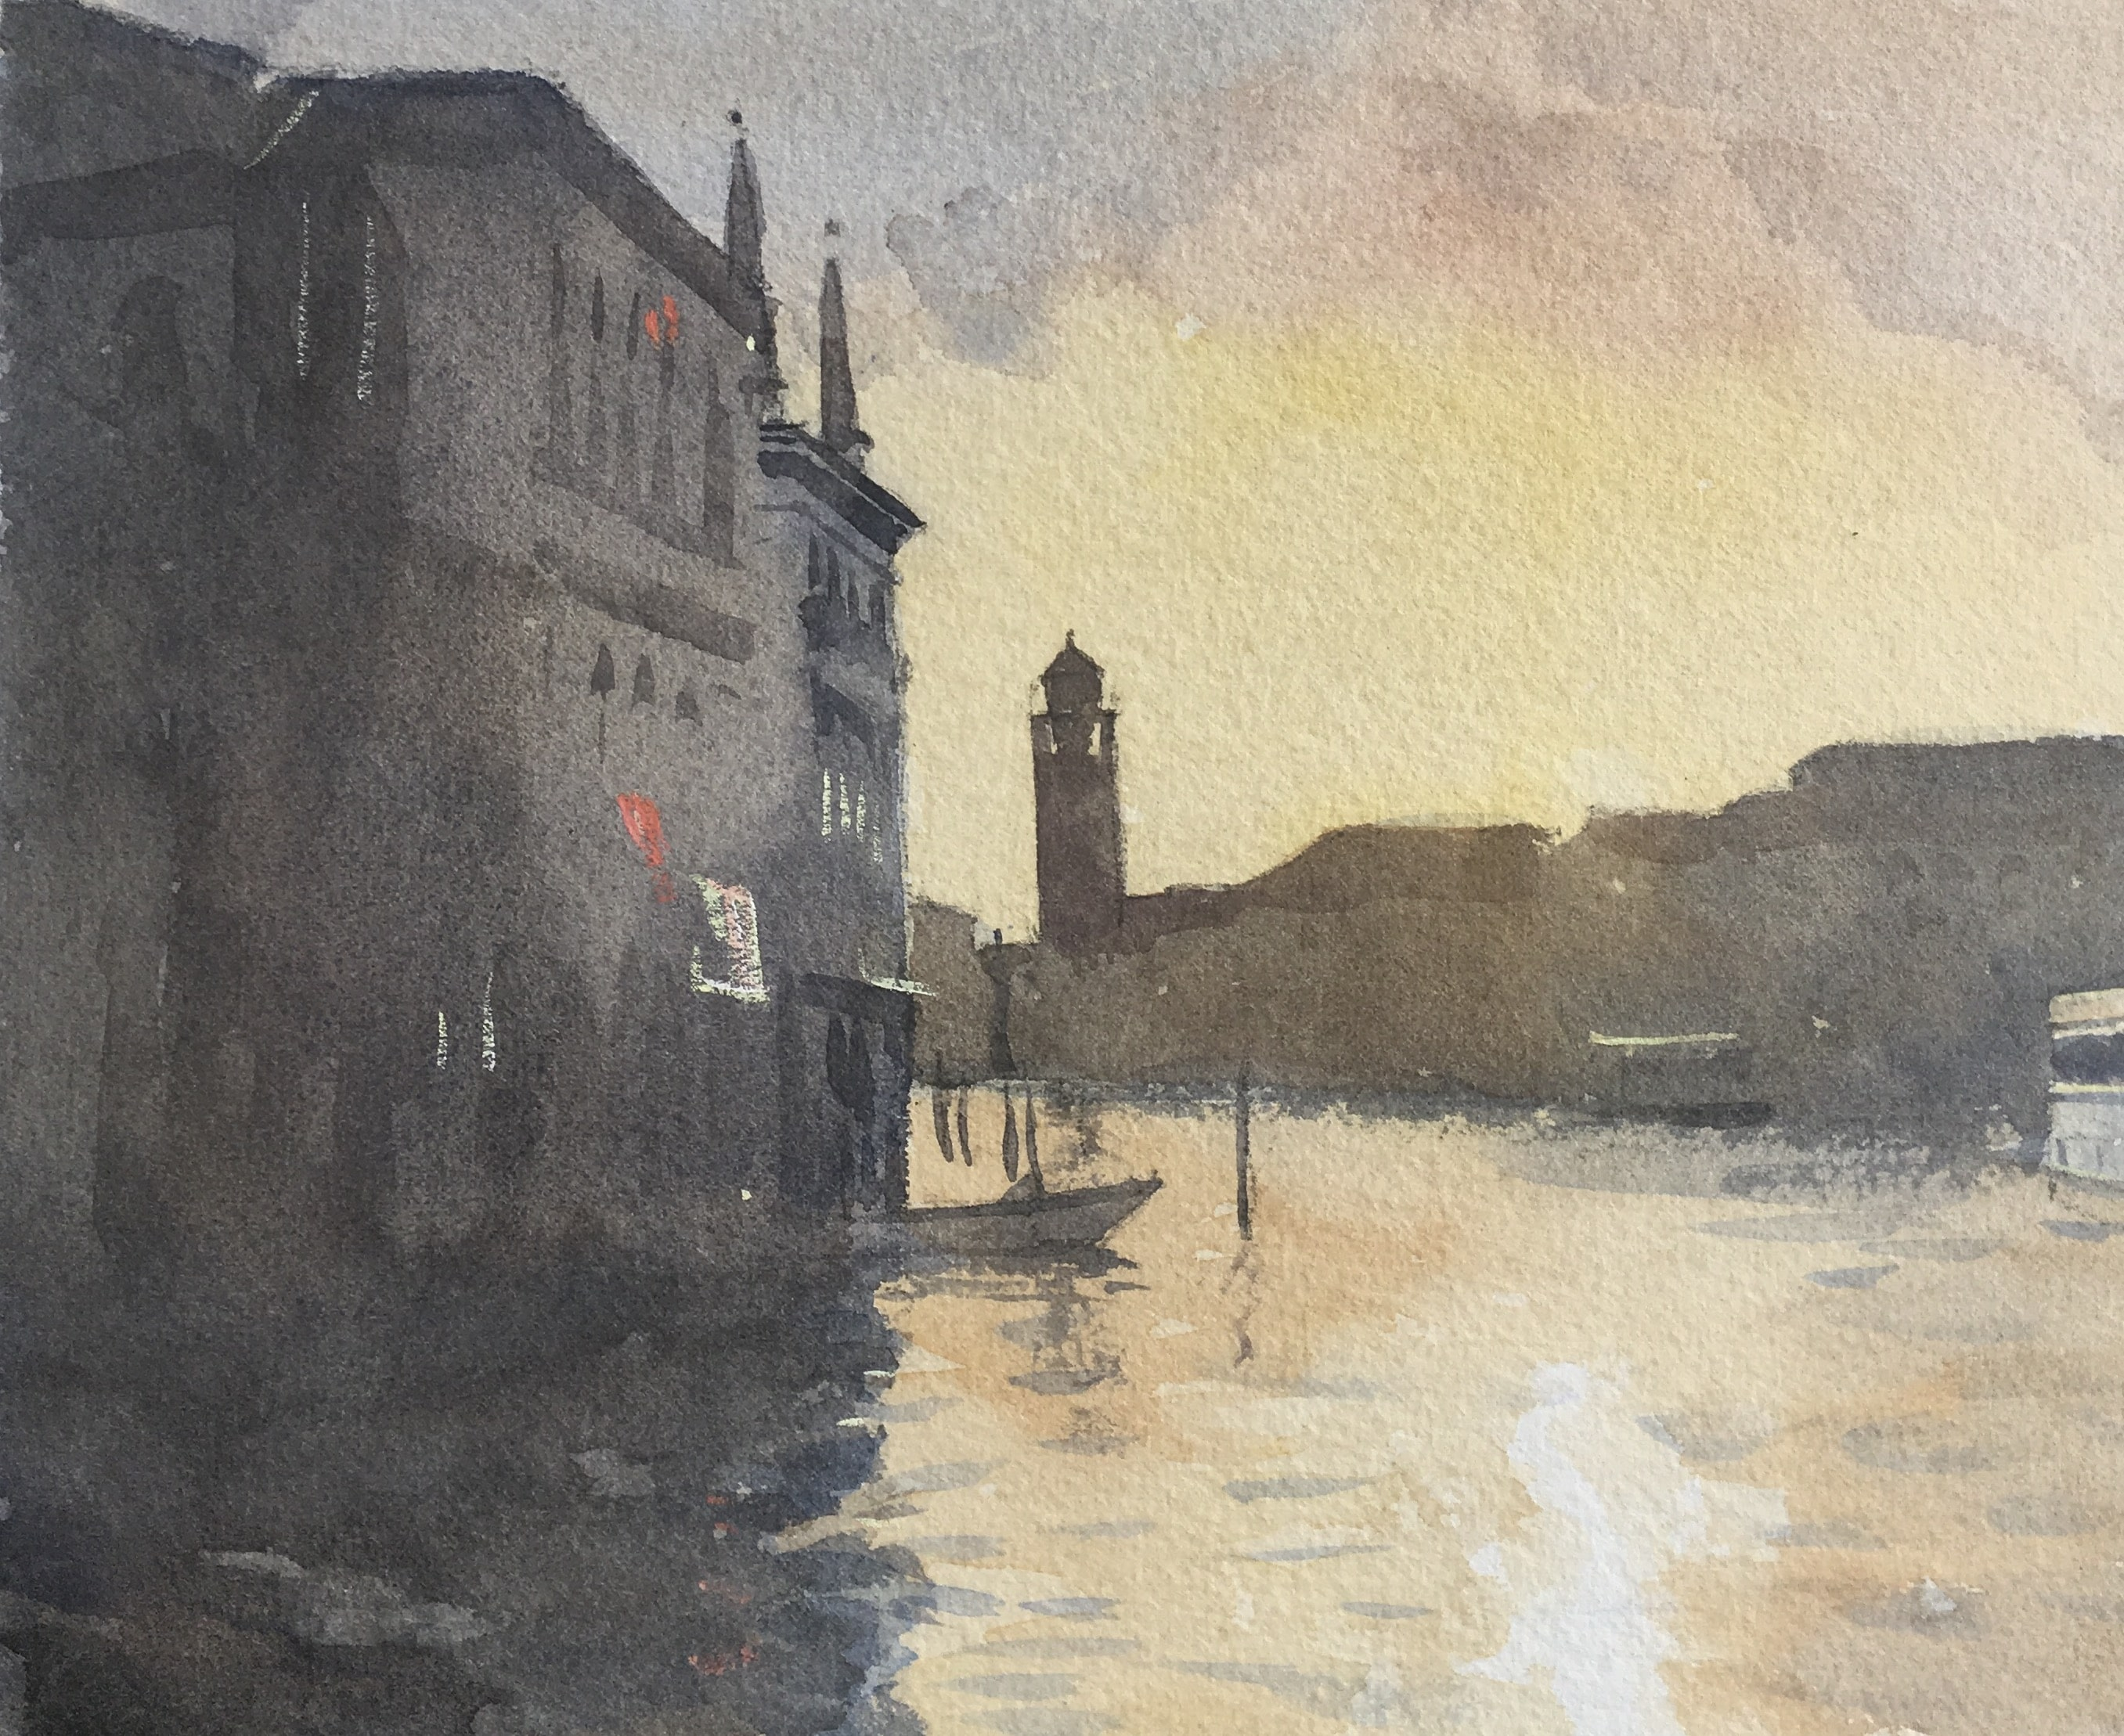 evening-on-the-canal-7.5-x-9.5-watercolour